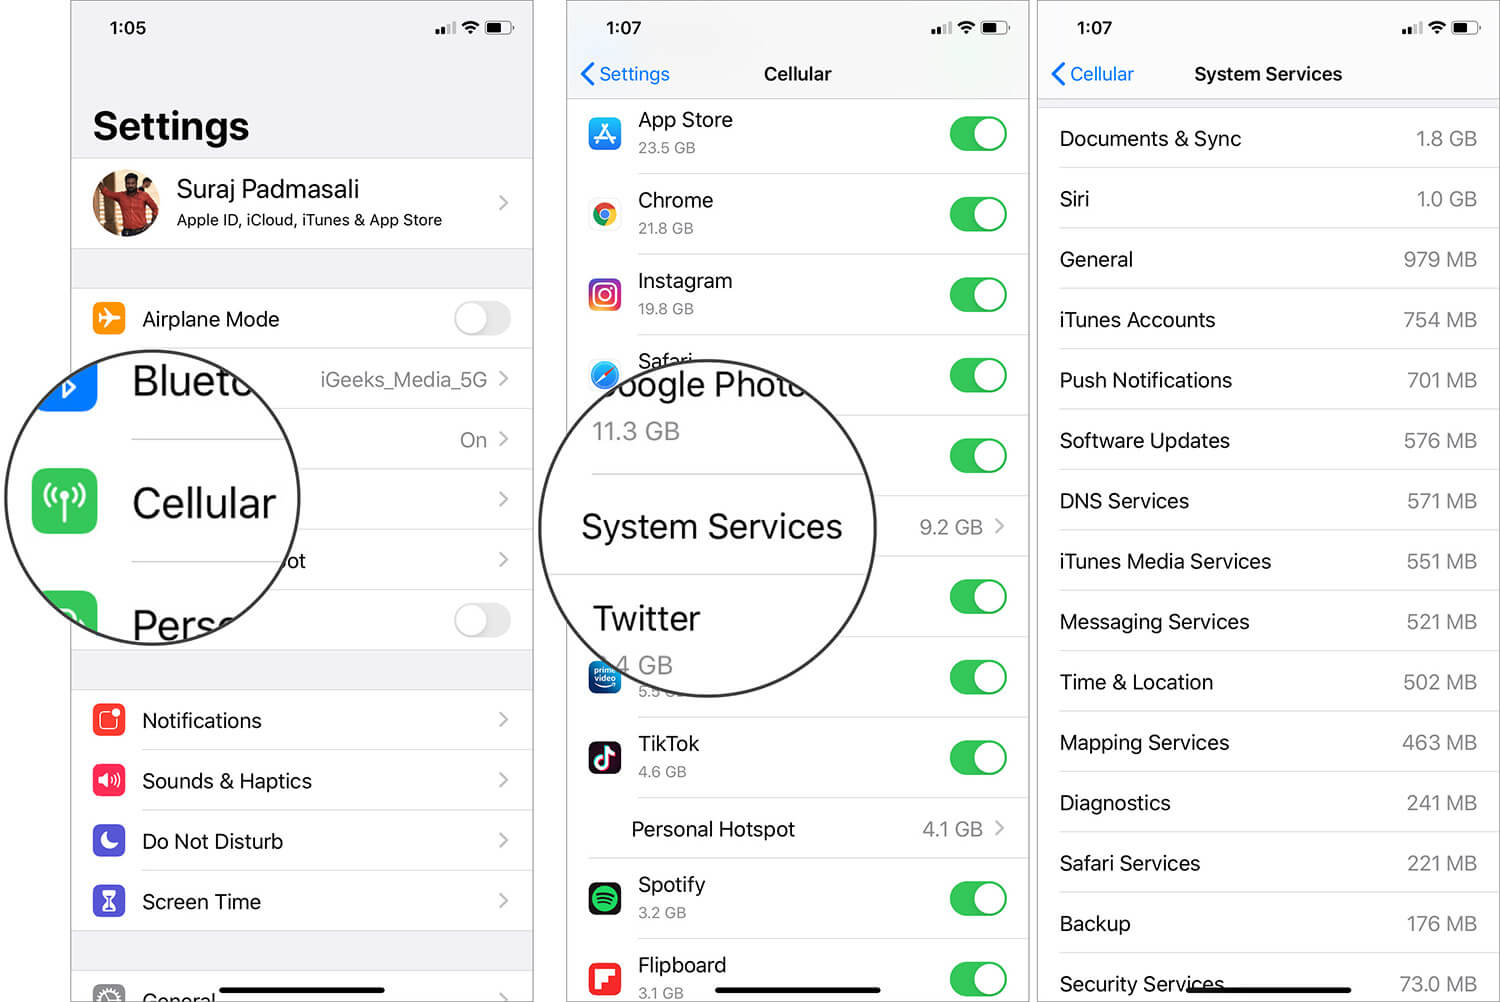 Tap on System Services to View Mobile Data Consumed on iPhone